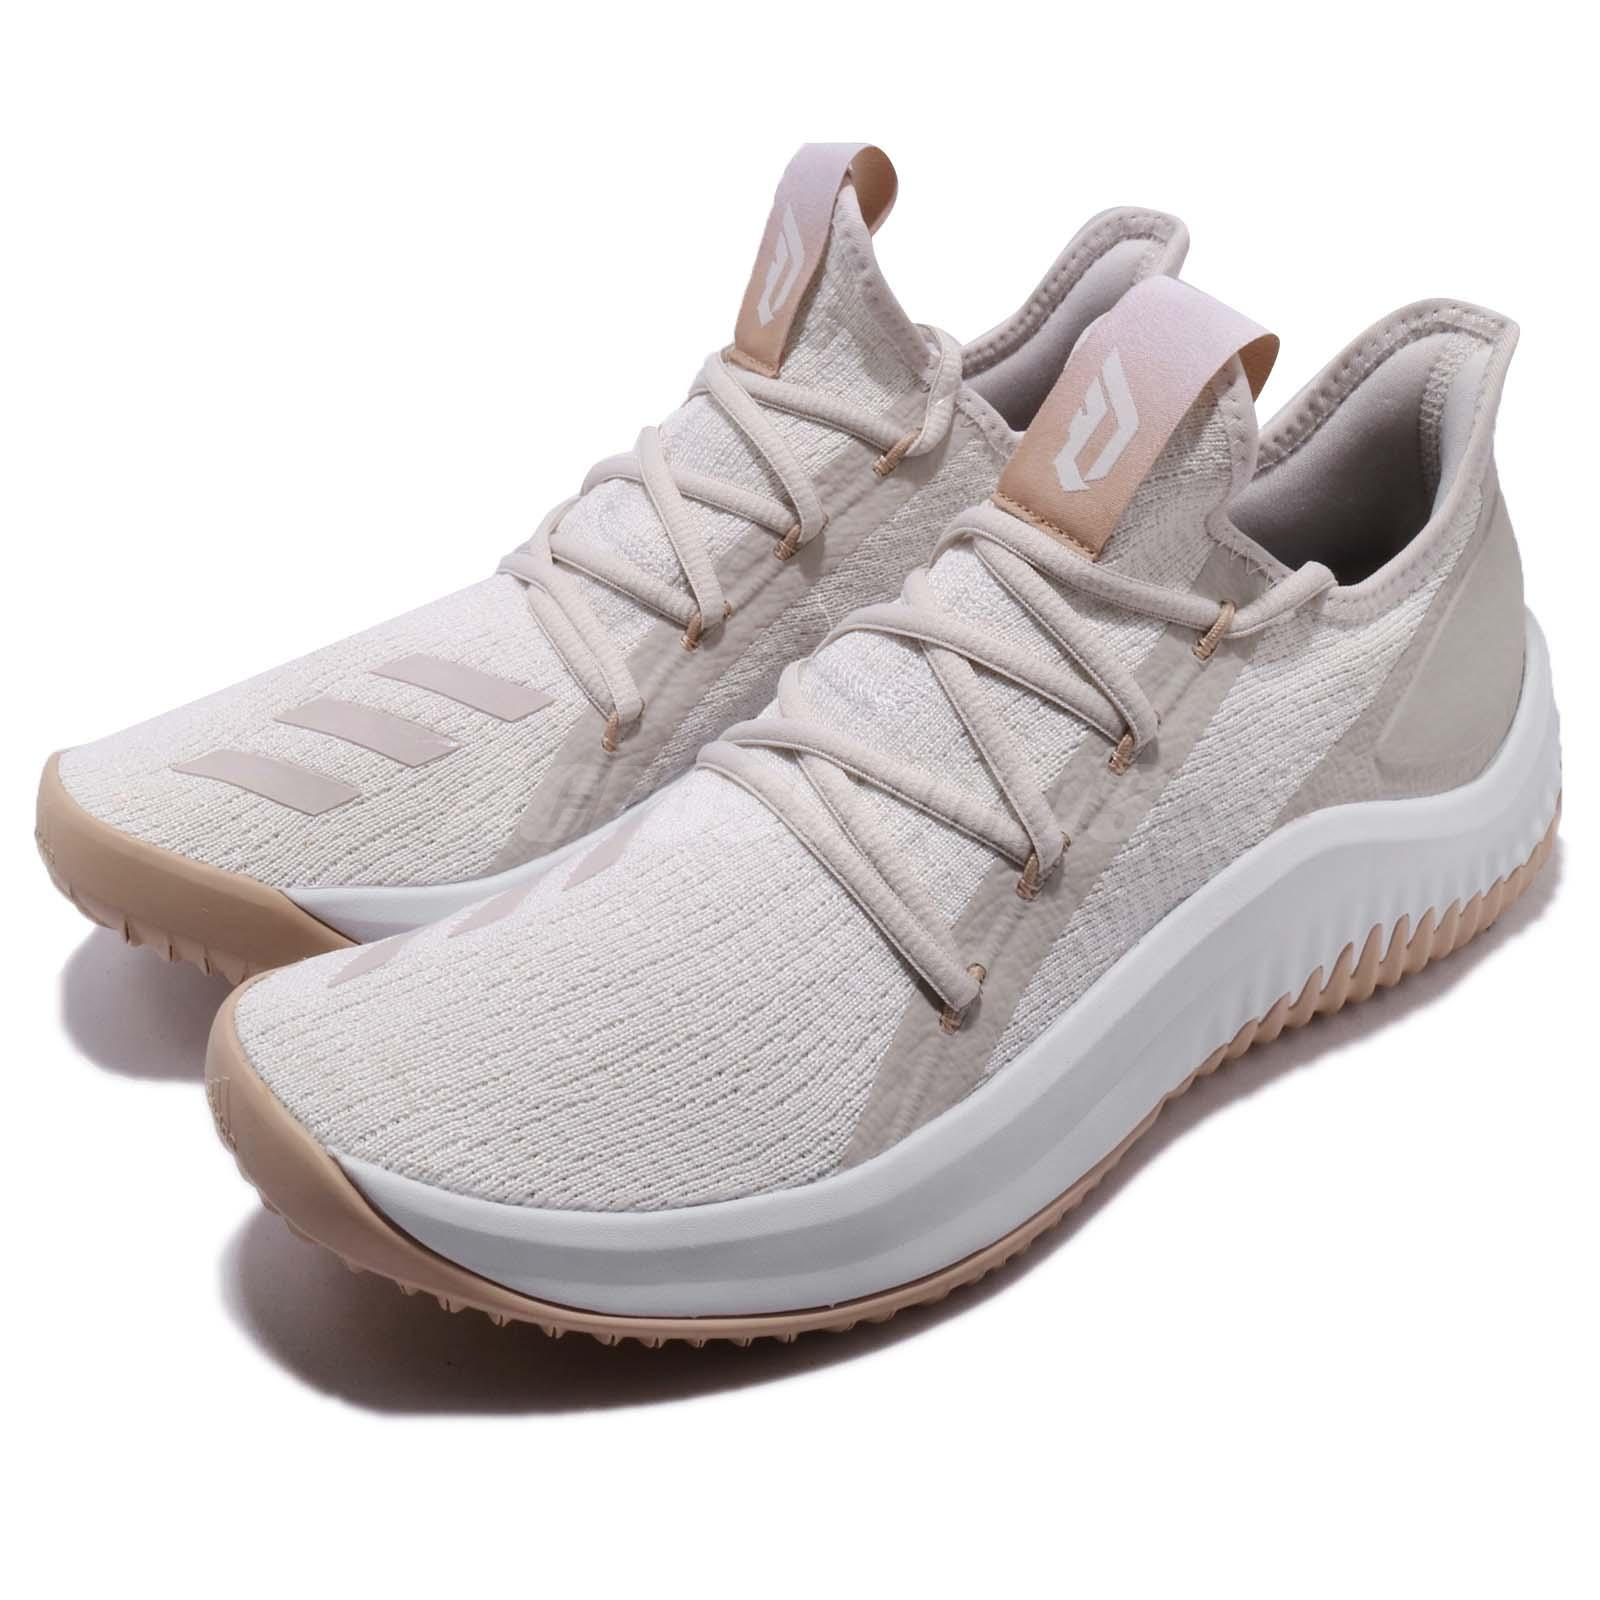 the best attitude bf9b8 b7088 Details about adidas Dame D.O.L.L.A. Damian Lillard Crystal White Basketball  Shoes DB1074